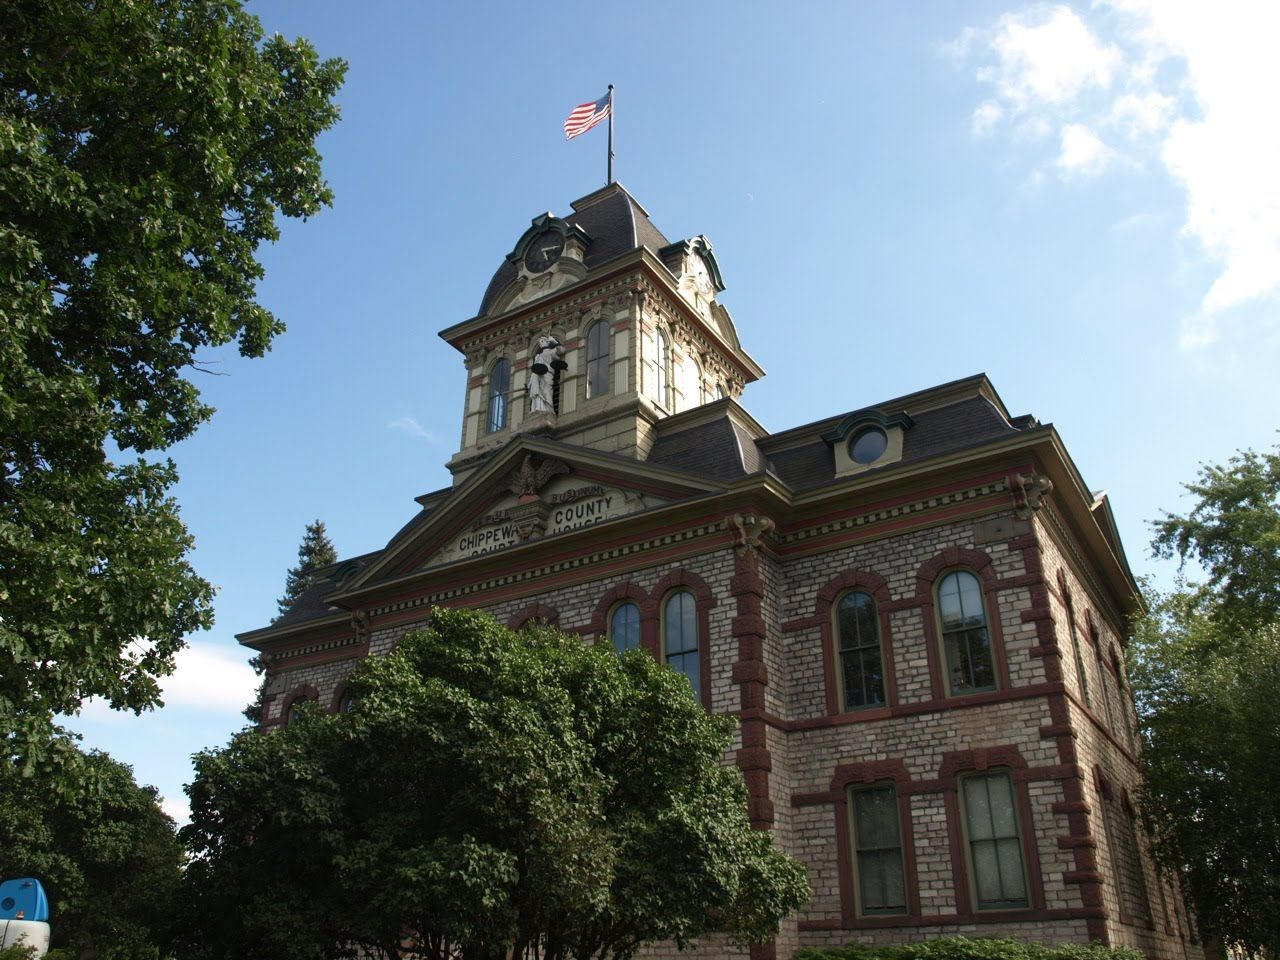 The County Courthouse